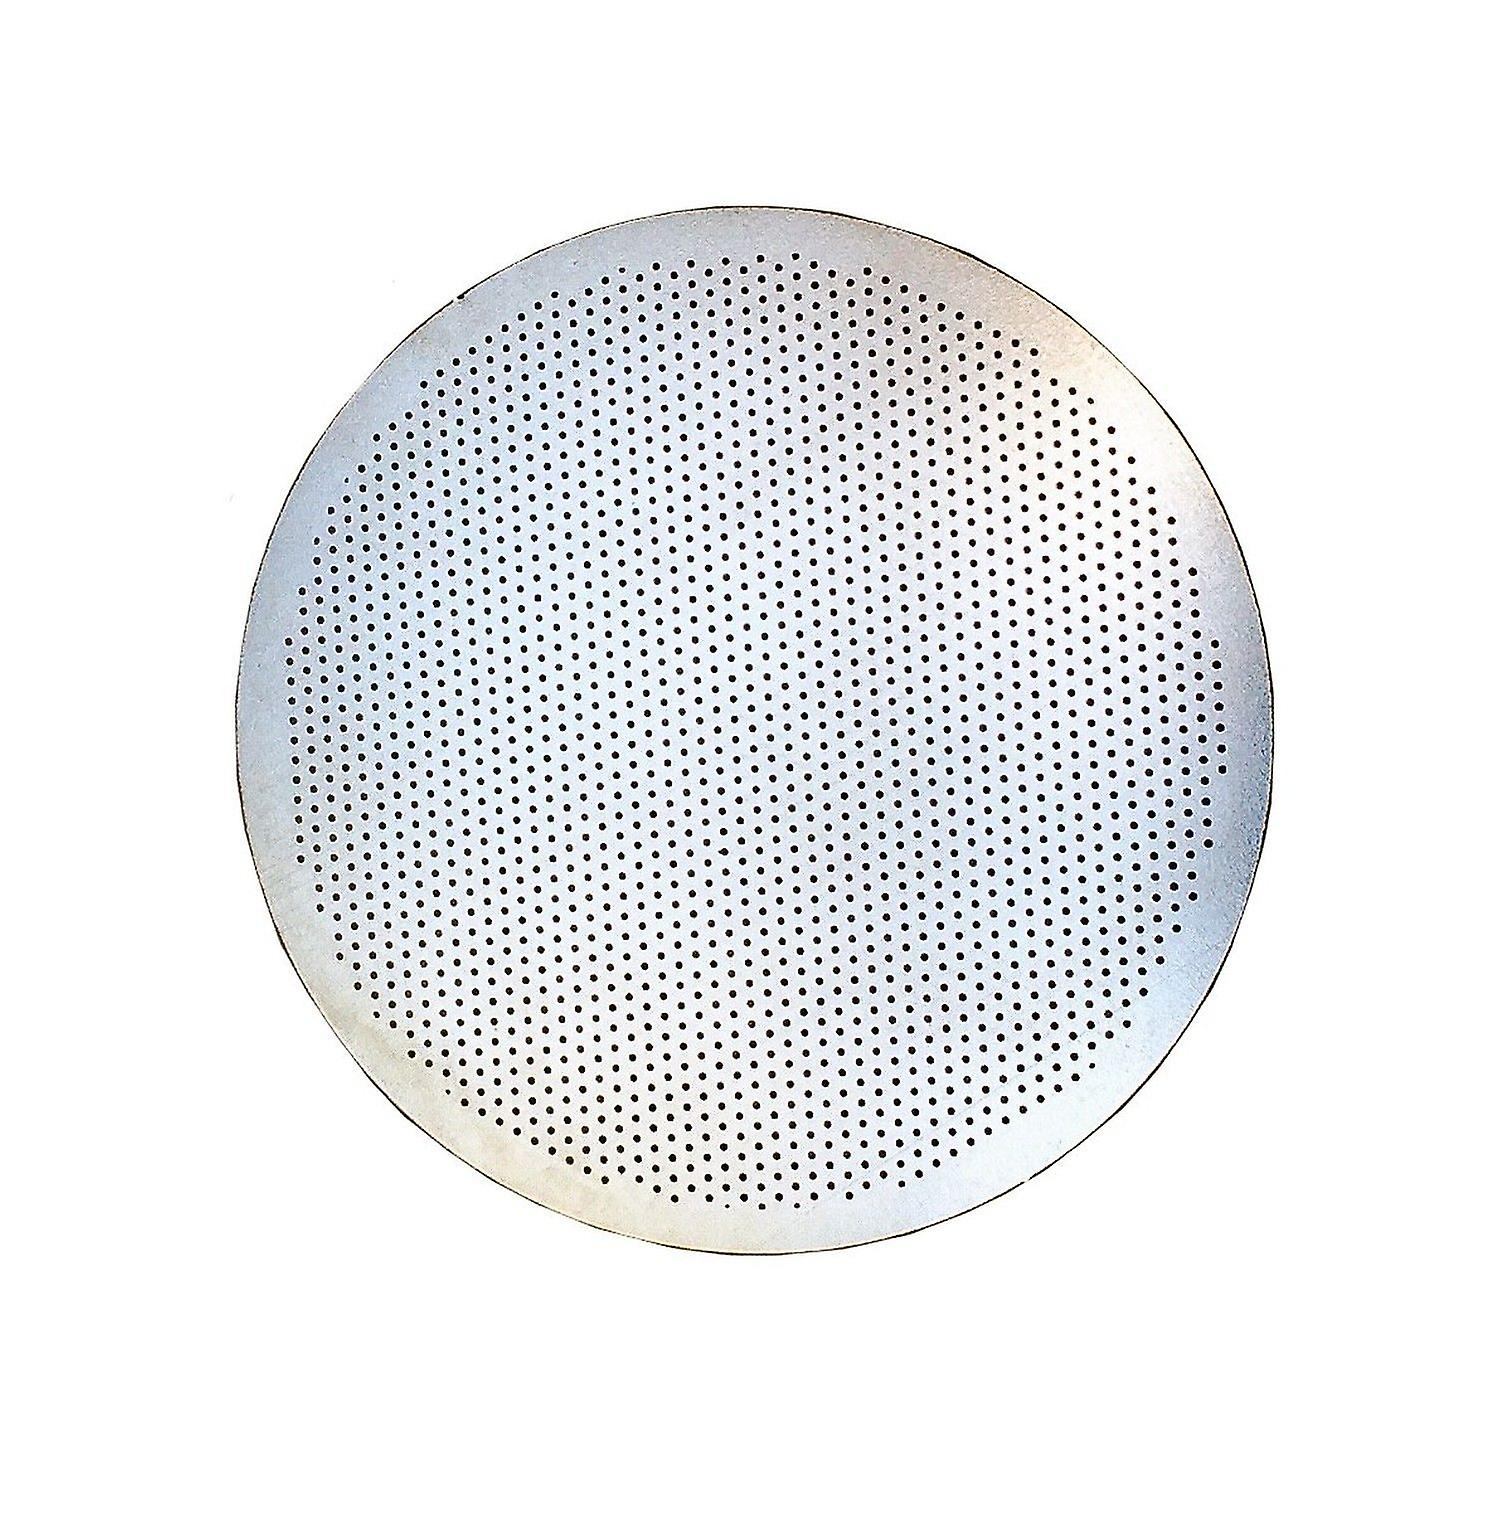 Kabalo Solid Reusable Metal Stainless Steel Coffee AeroPress Filter For Pro & Home Use